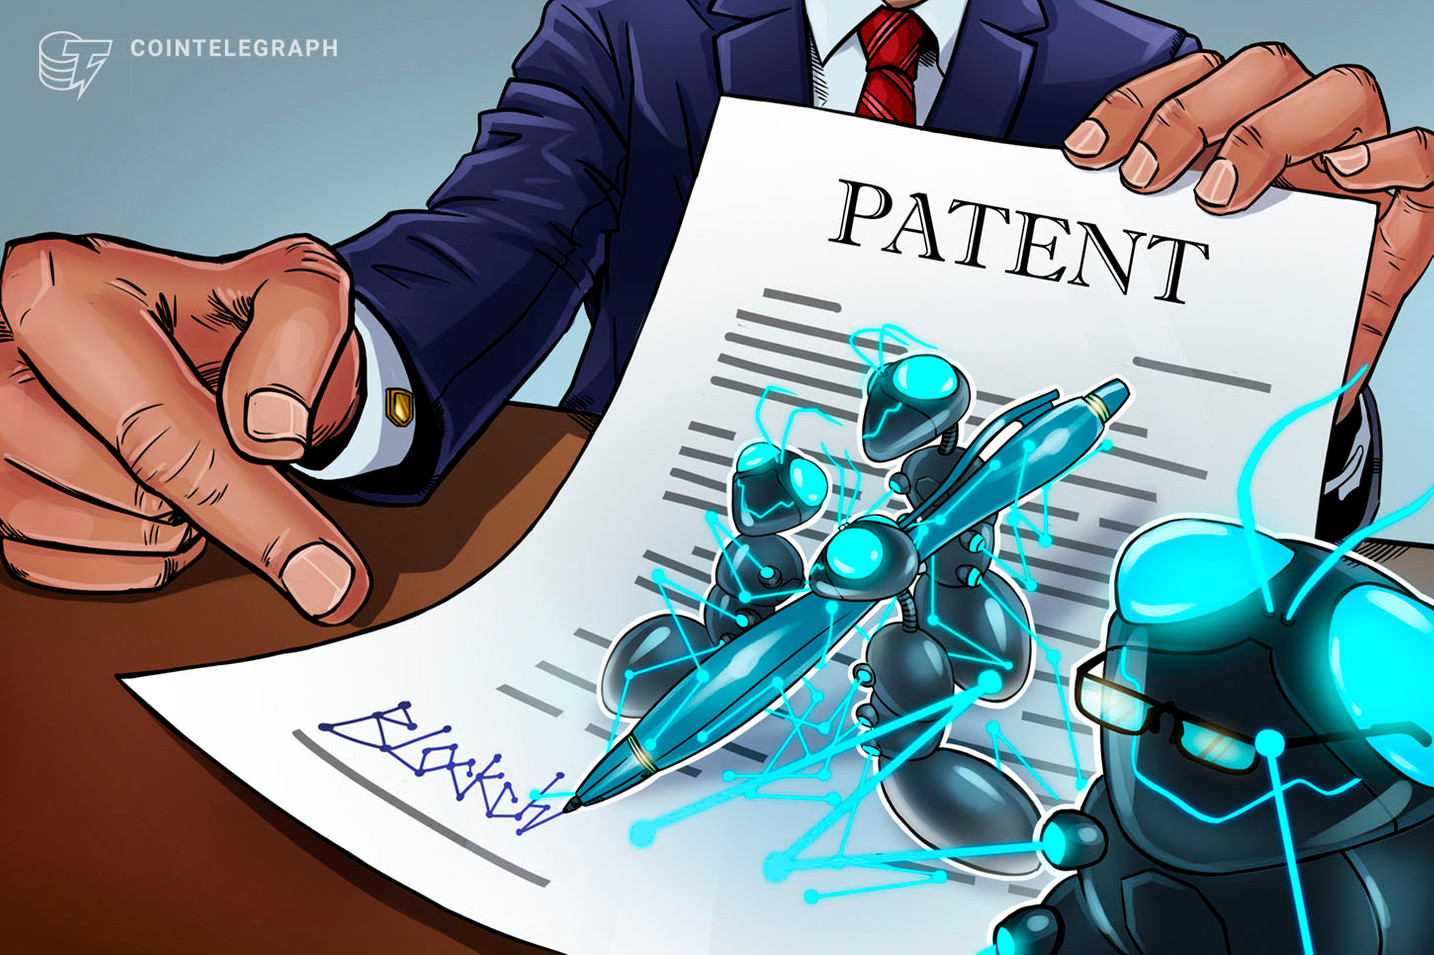 Chinese Tech Giant Tencent Files New Slew of Blockchain Patents